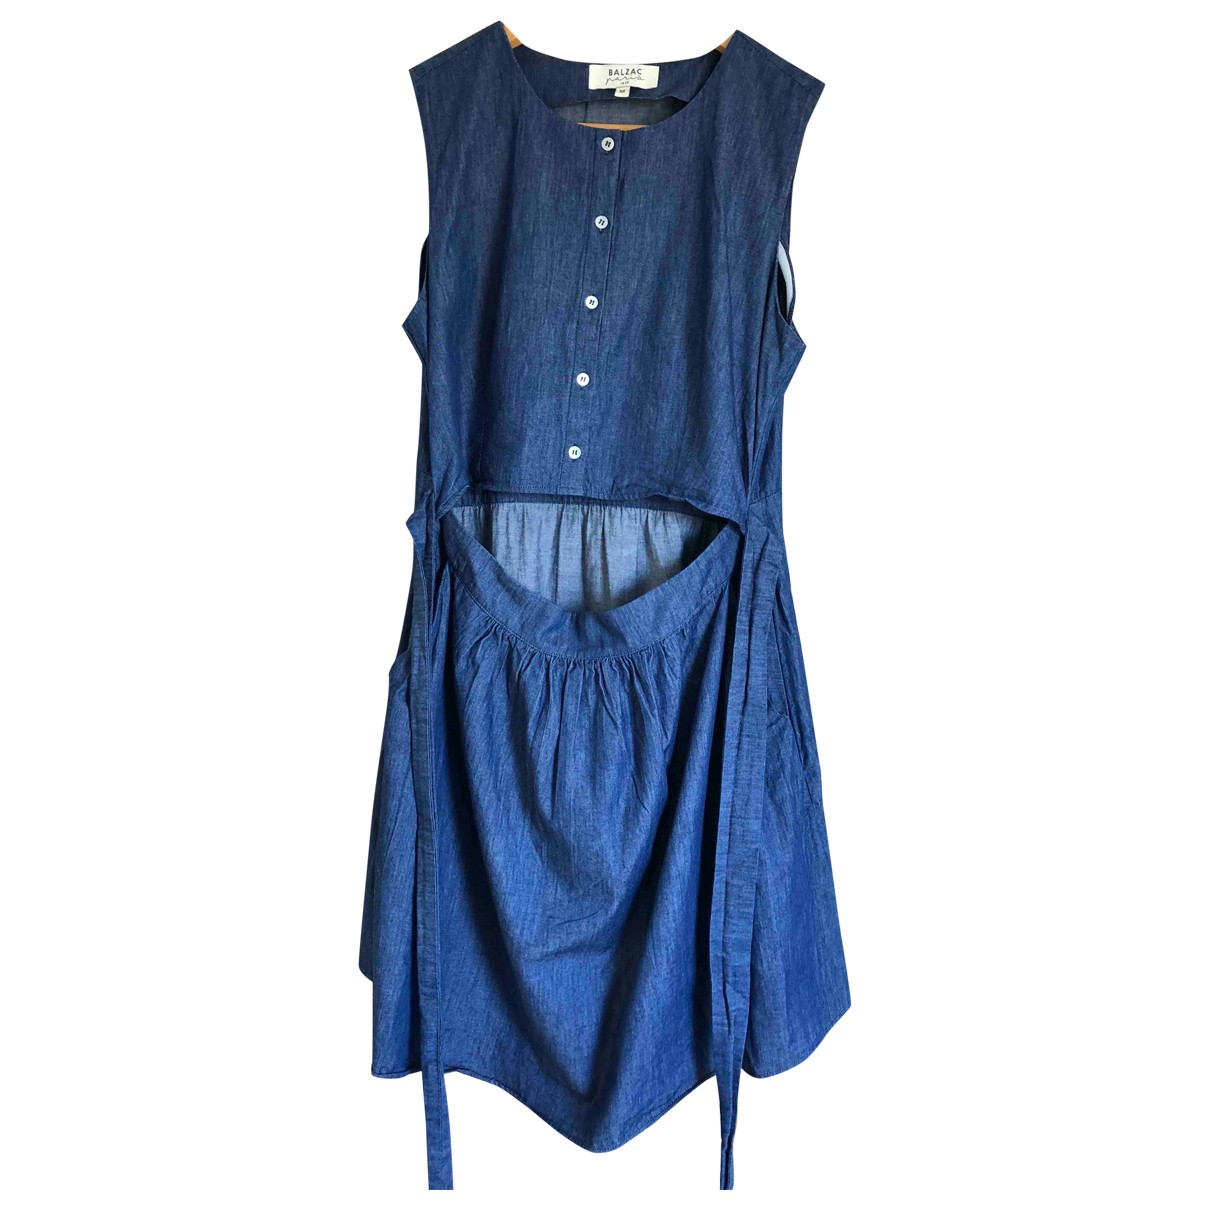 Balzac Paris \N Kleid in  Blau Baumwolle